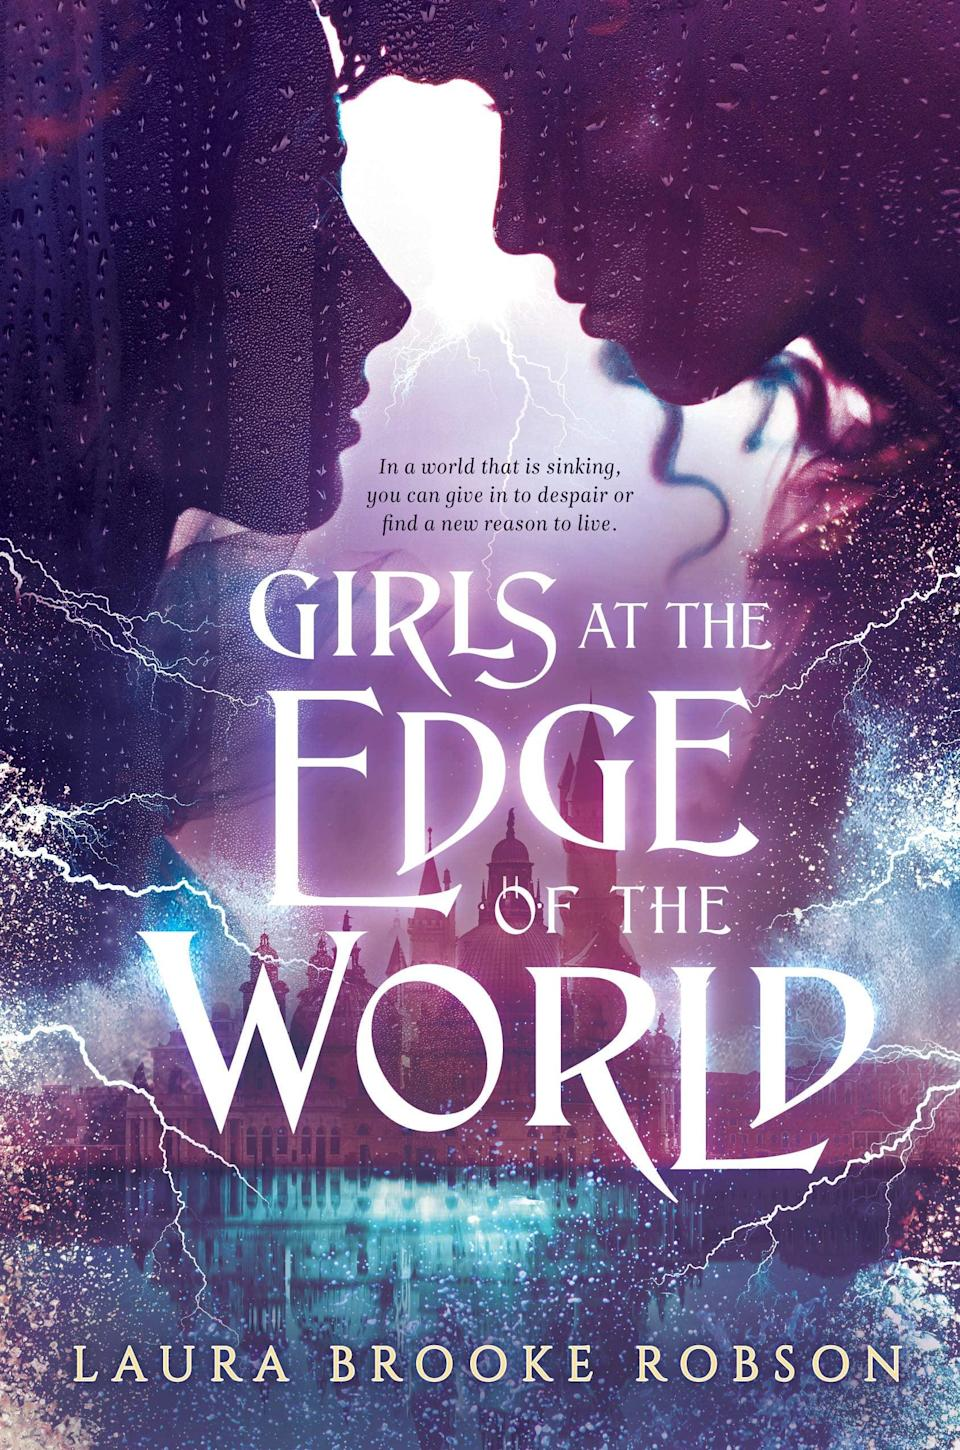 <p>An apocalyptic flood forms the backdrop for Laura Brooke Robson's inventive fantasy novel <span><strong>Girls at the Edge of the World</strong></span>. With the waters rising, Natasha Koskinen will do whatever it takes to save her troupe of aerial silk performers including courting a royal. But when her newest recruit's quest for revenge threatens everyone's safety, Natasha will be forced to reevaluate her plan and everything she thought she knew about herself. </p> <p><em>Out June 8</em></p>